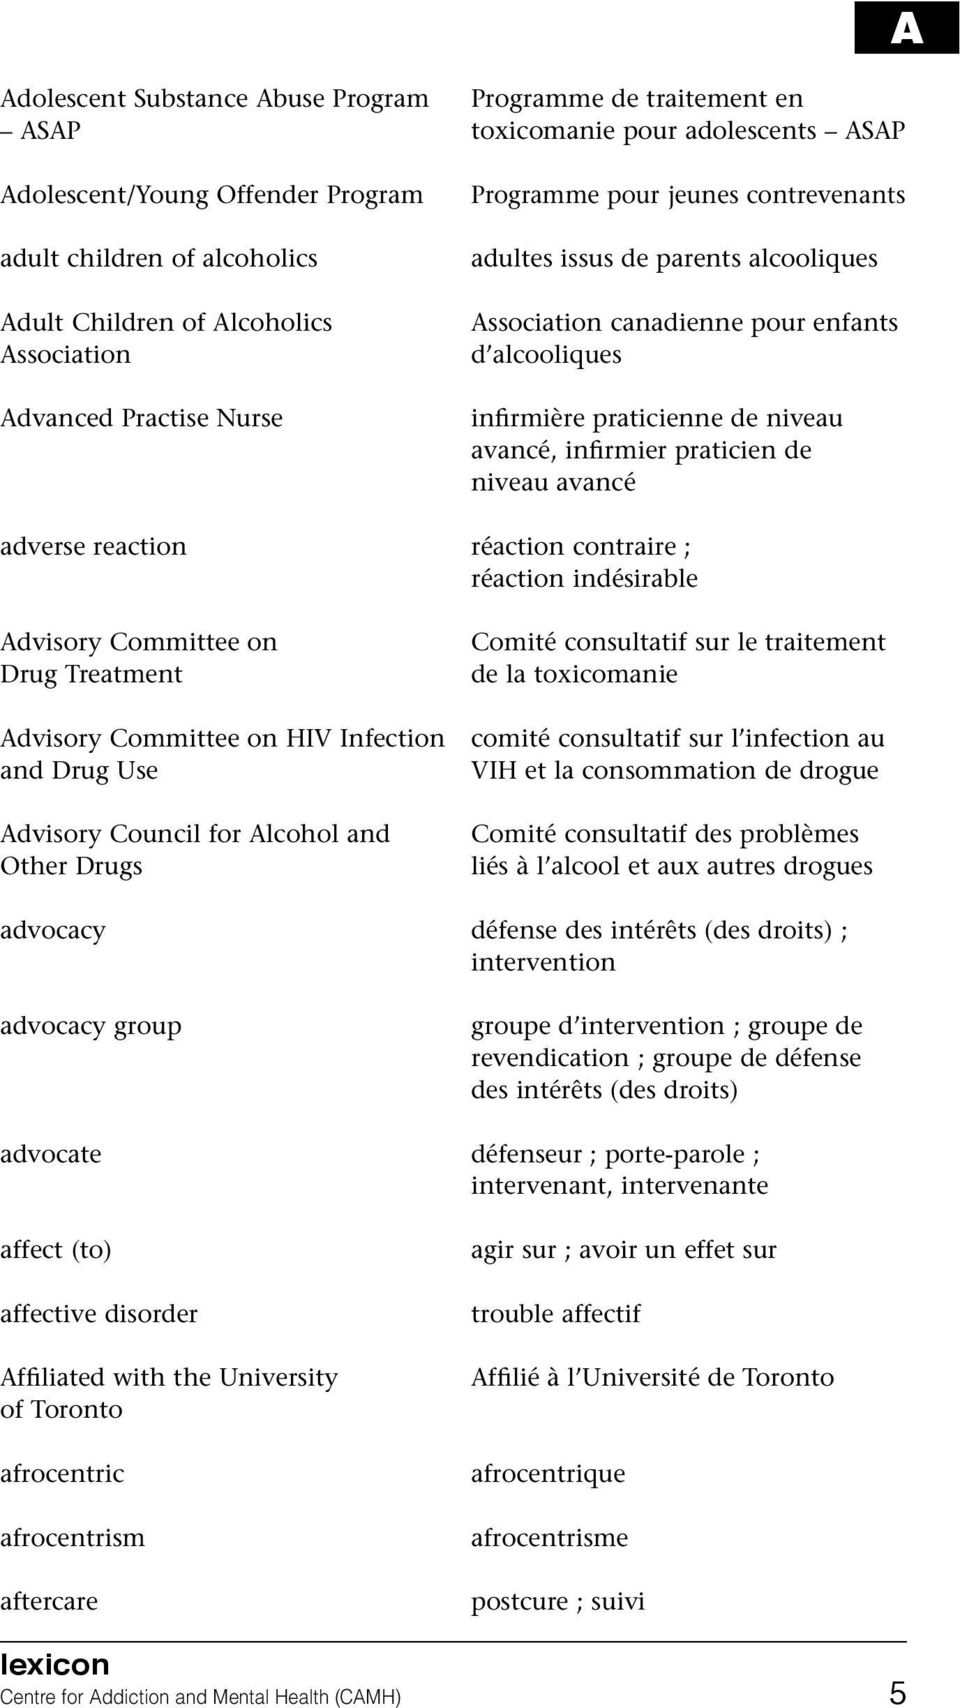 infirmier praticien de niveau avancé adverse reaction réaction contraire ; réaction indésirable Advisory Committee on Drug Treatment Comité consultatif sur le traitement de la toxicomanie Advisory